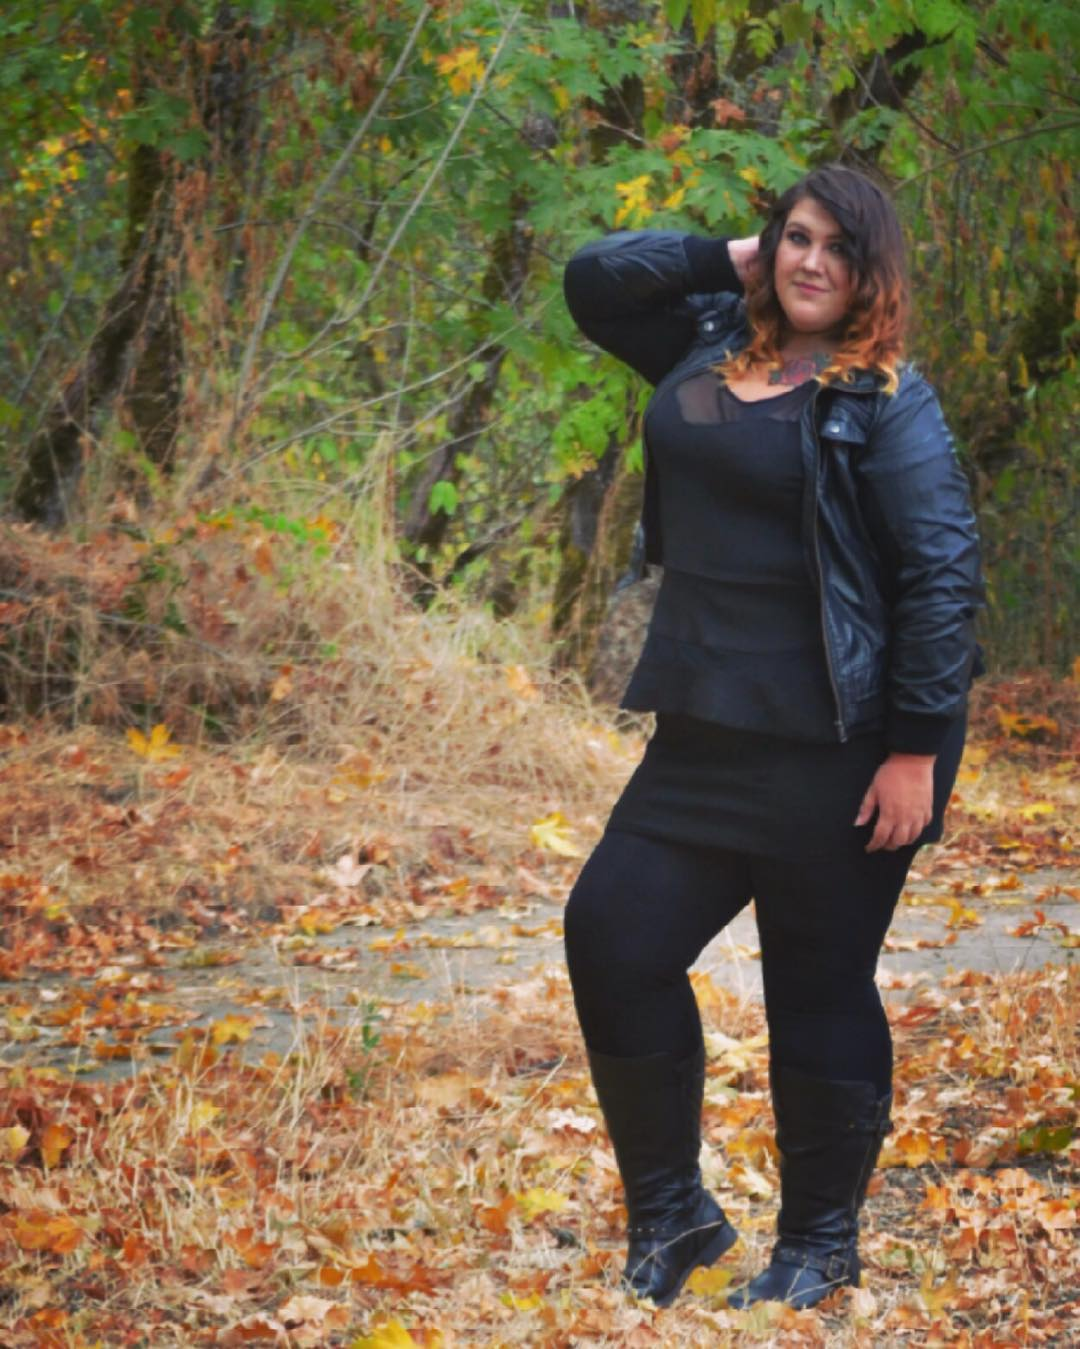 Simple Black Top, Legging With Leather Jacket And Ankle Shoes